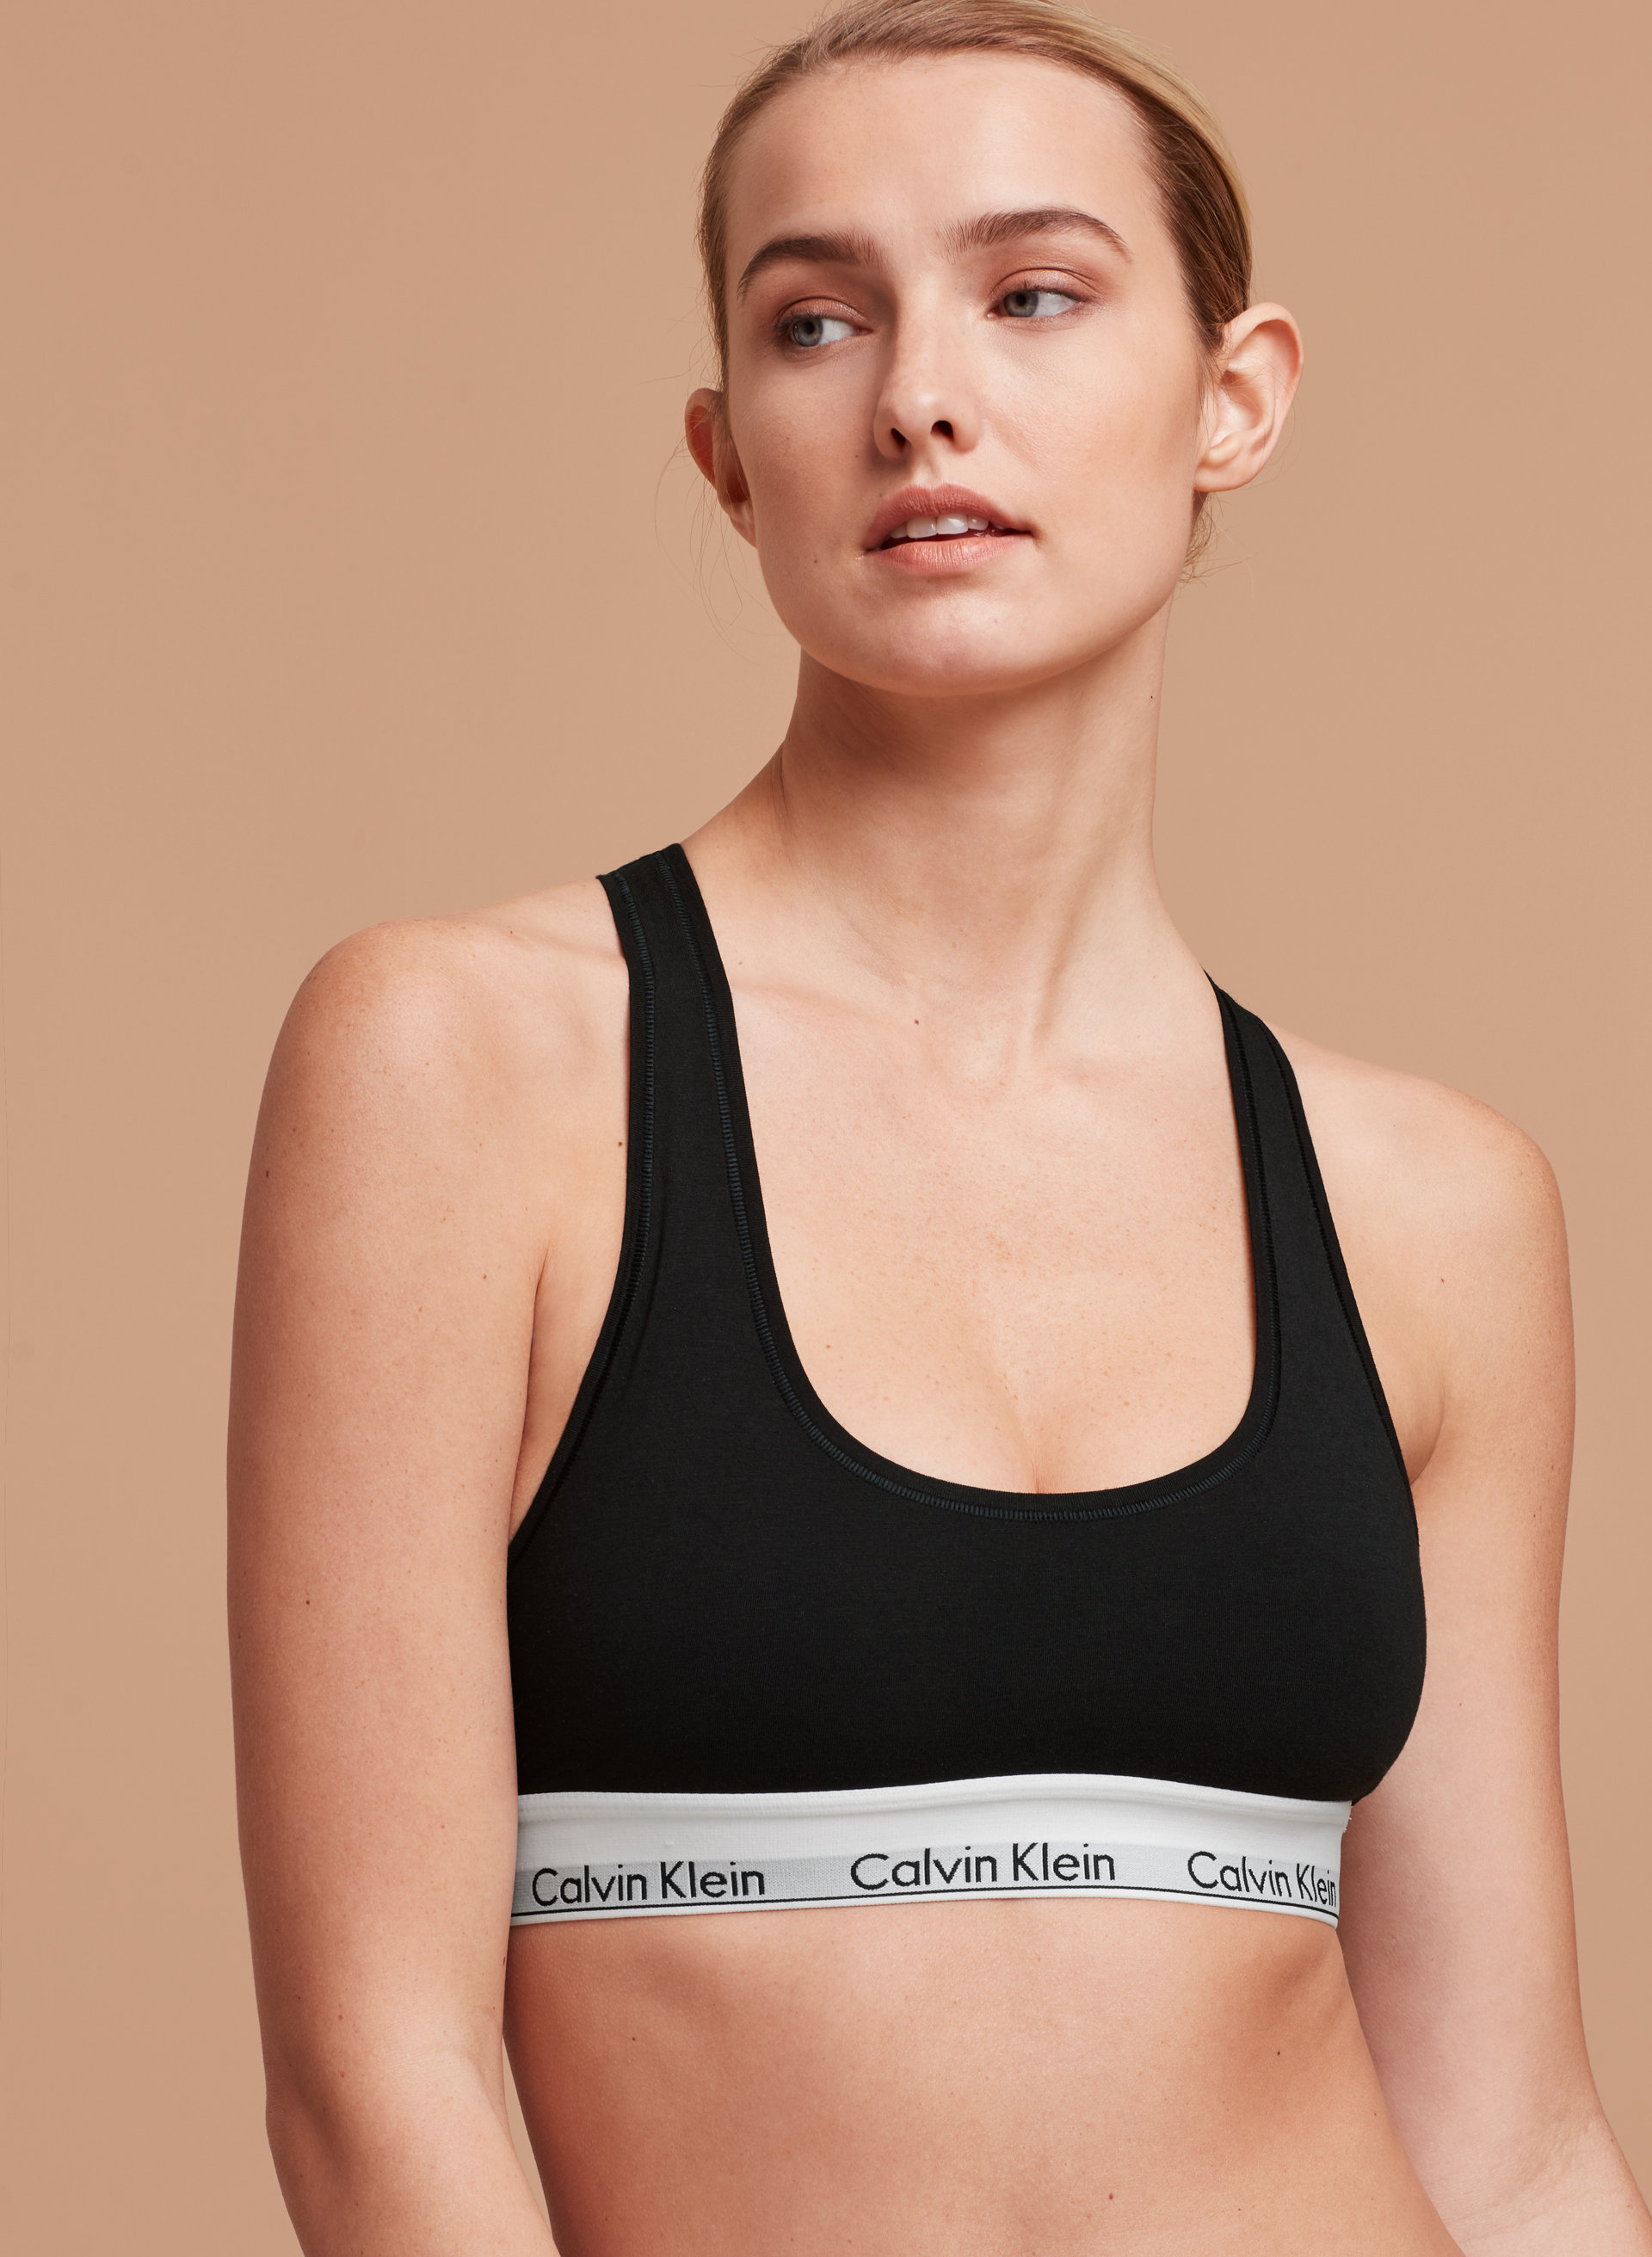 calvin klein ck logo bra top aritzia. Black Bedroom Furniture Sets. Home Design Ideas